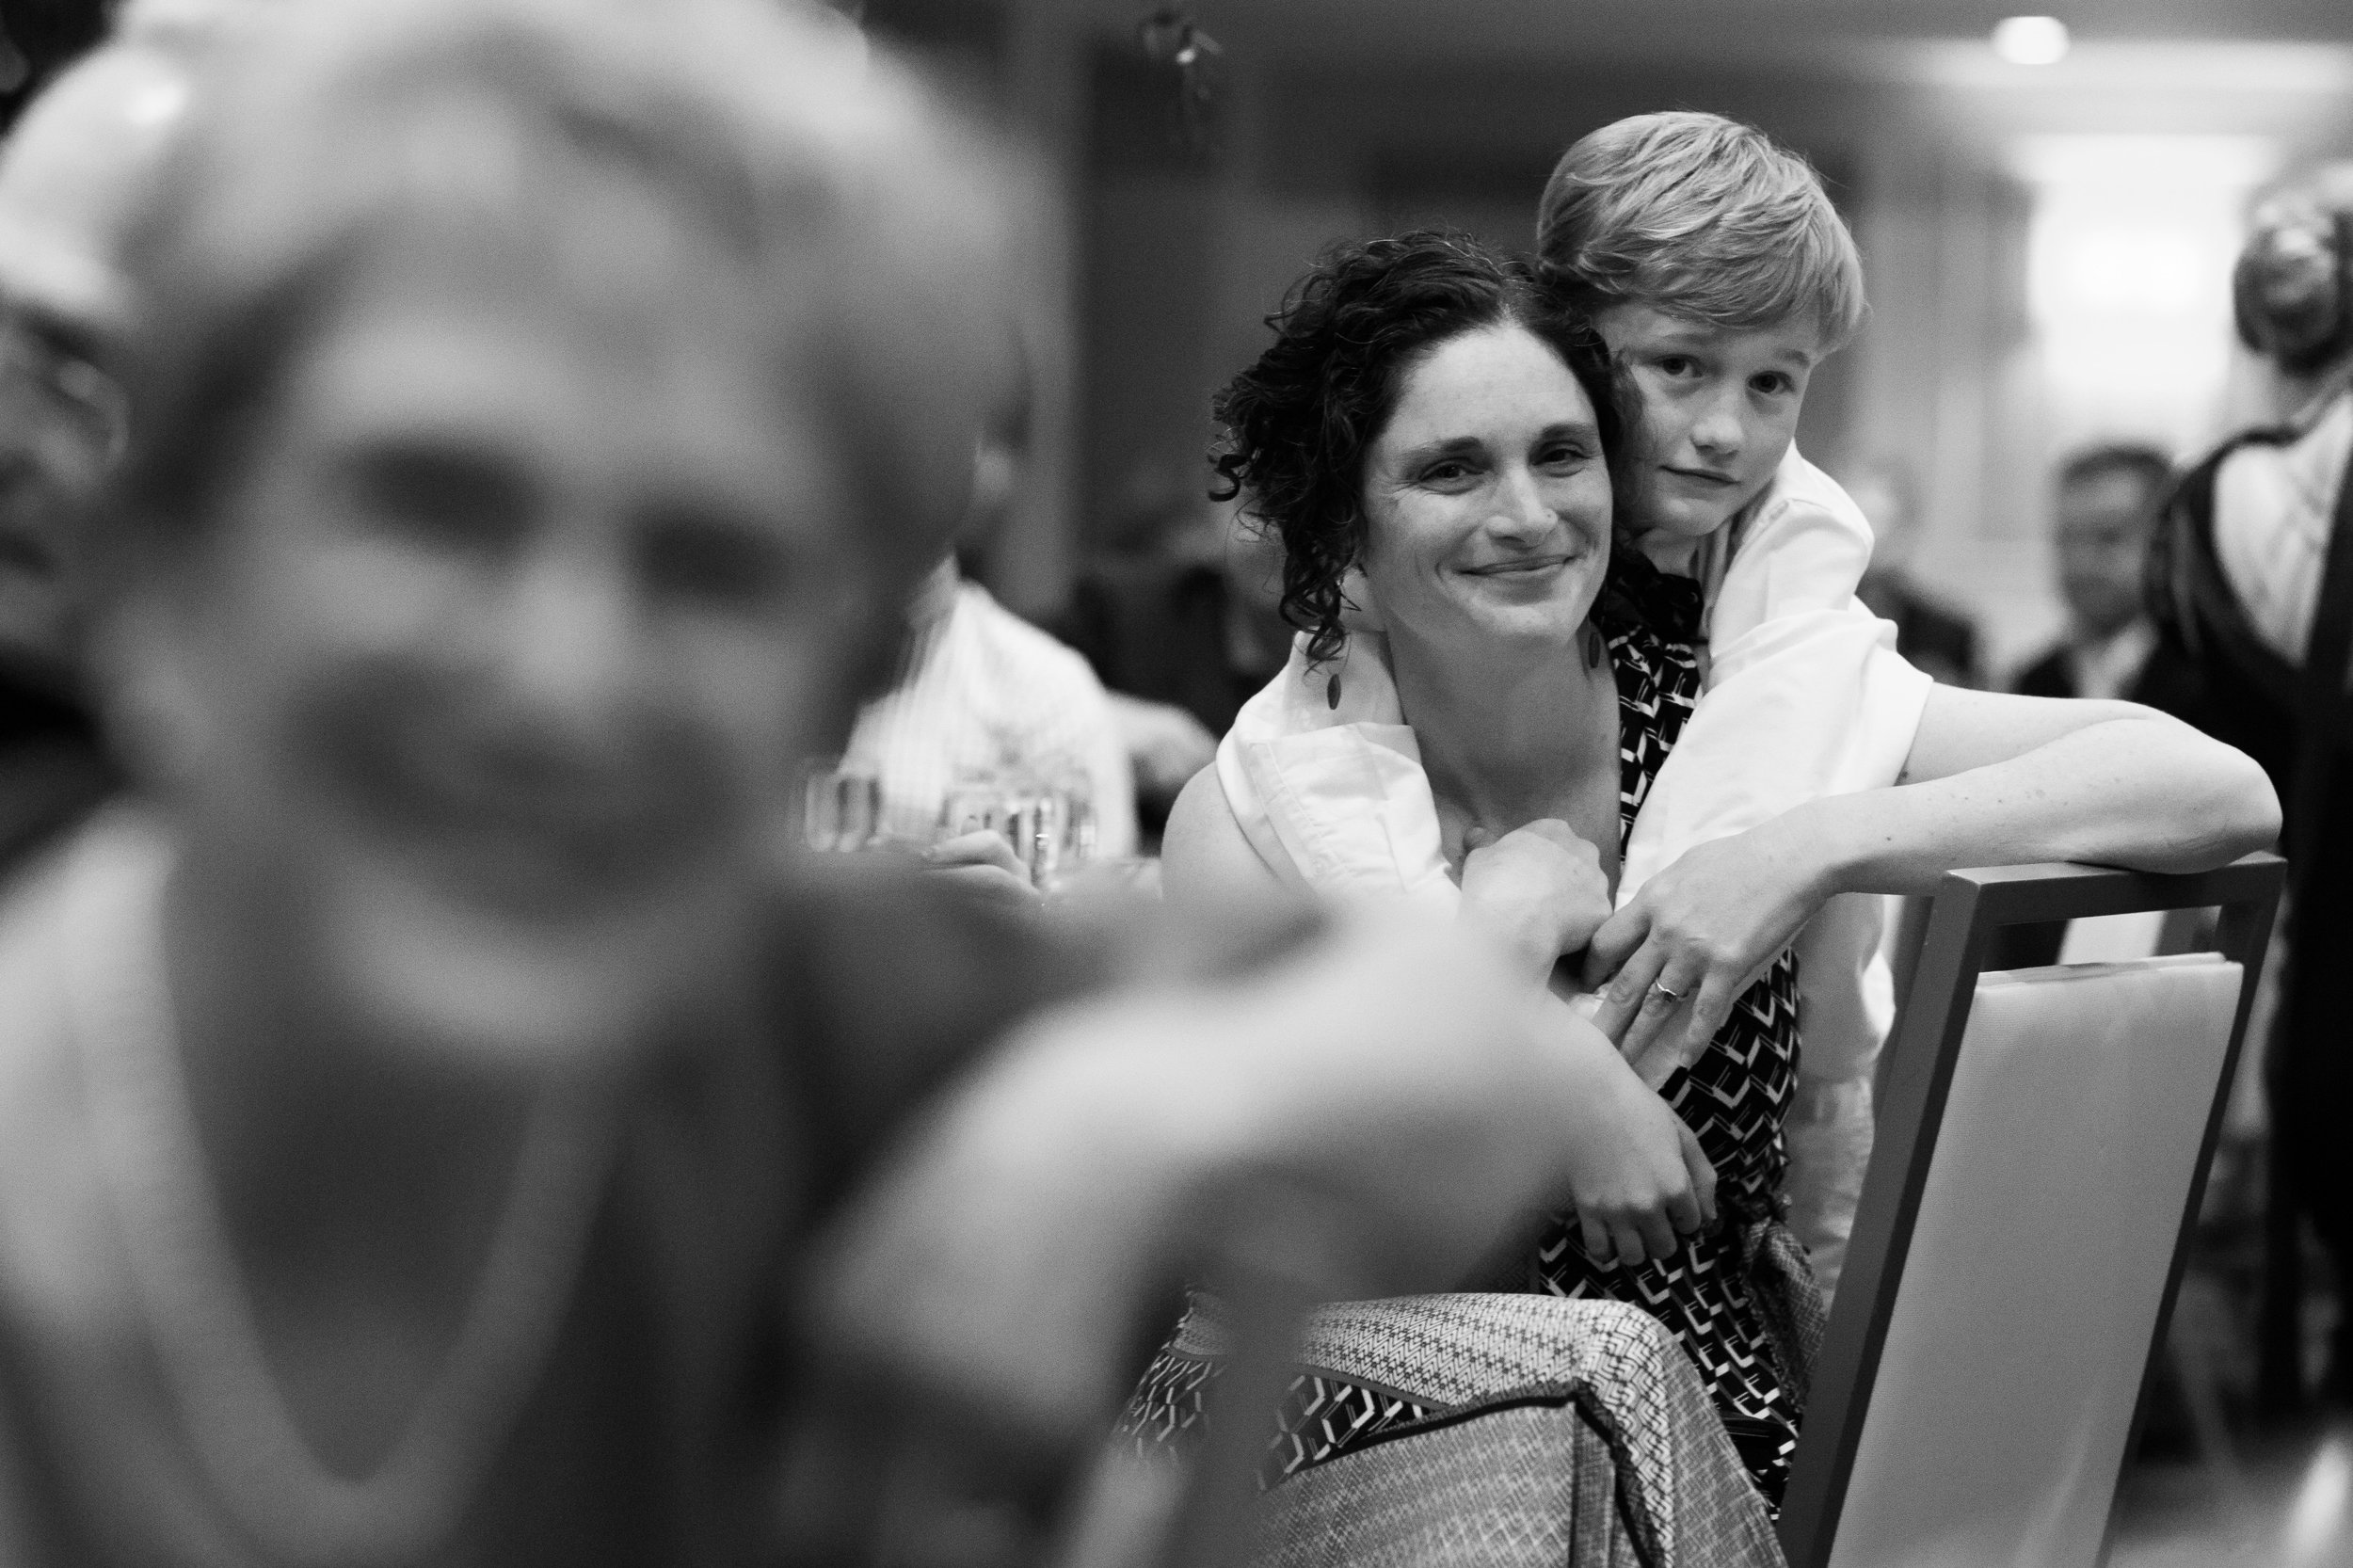 st-anthony-hotel-wedding-photography-10139san-antonio.JPG